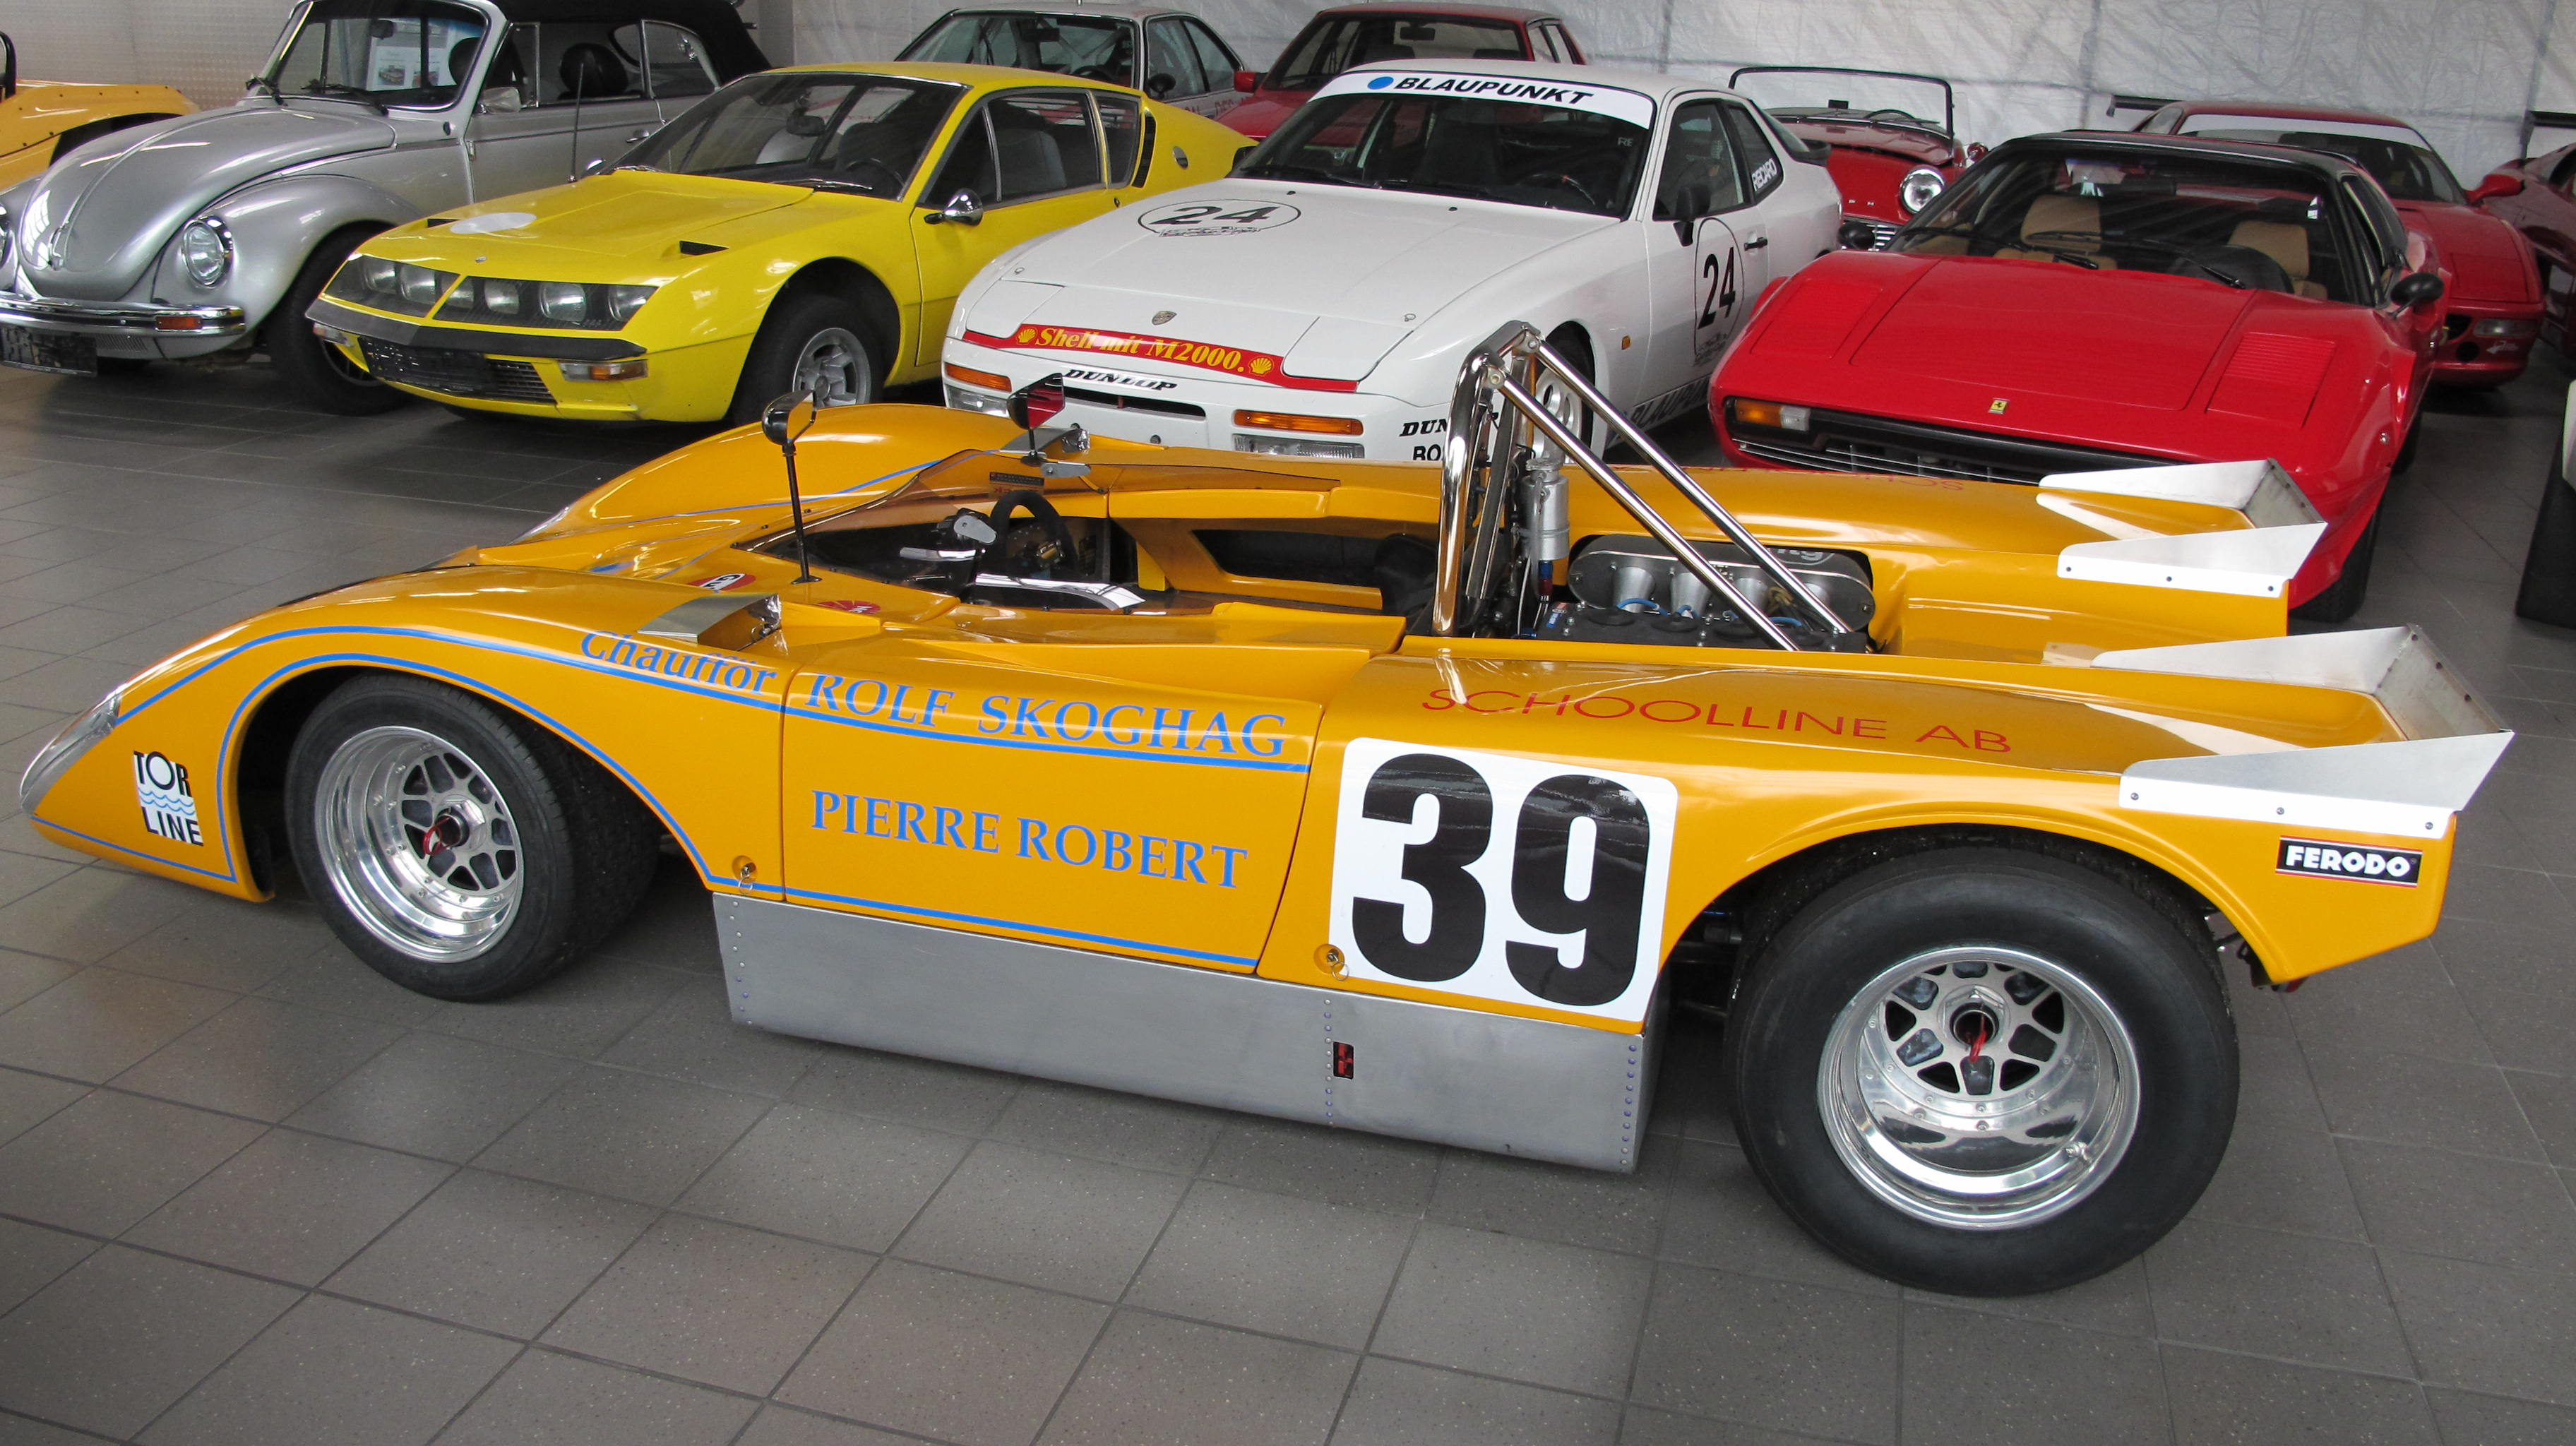 LOLA T210 #SL210-14 SPORTSPROTOTYPE For Sale on EM